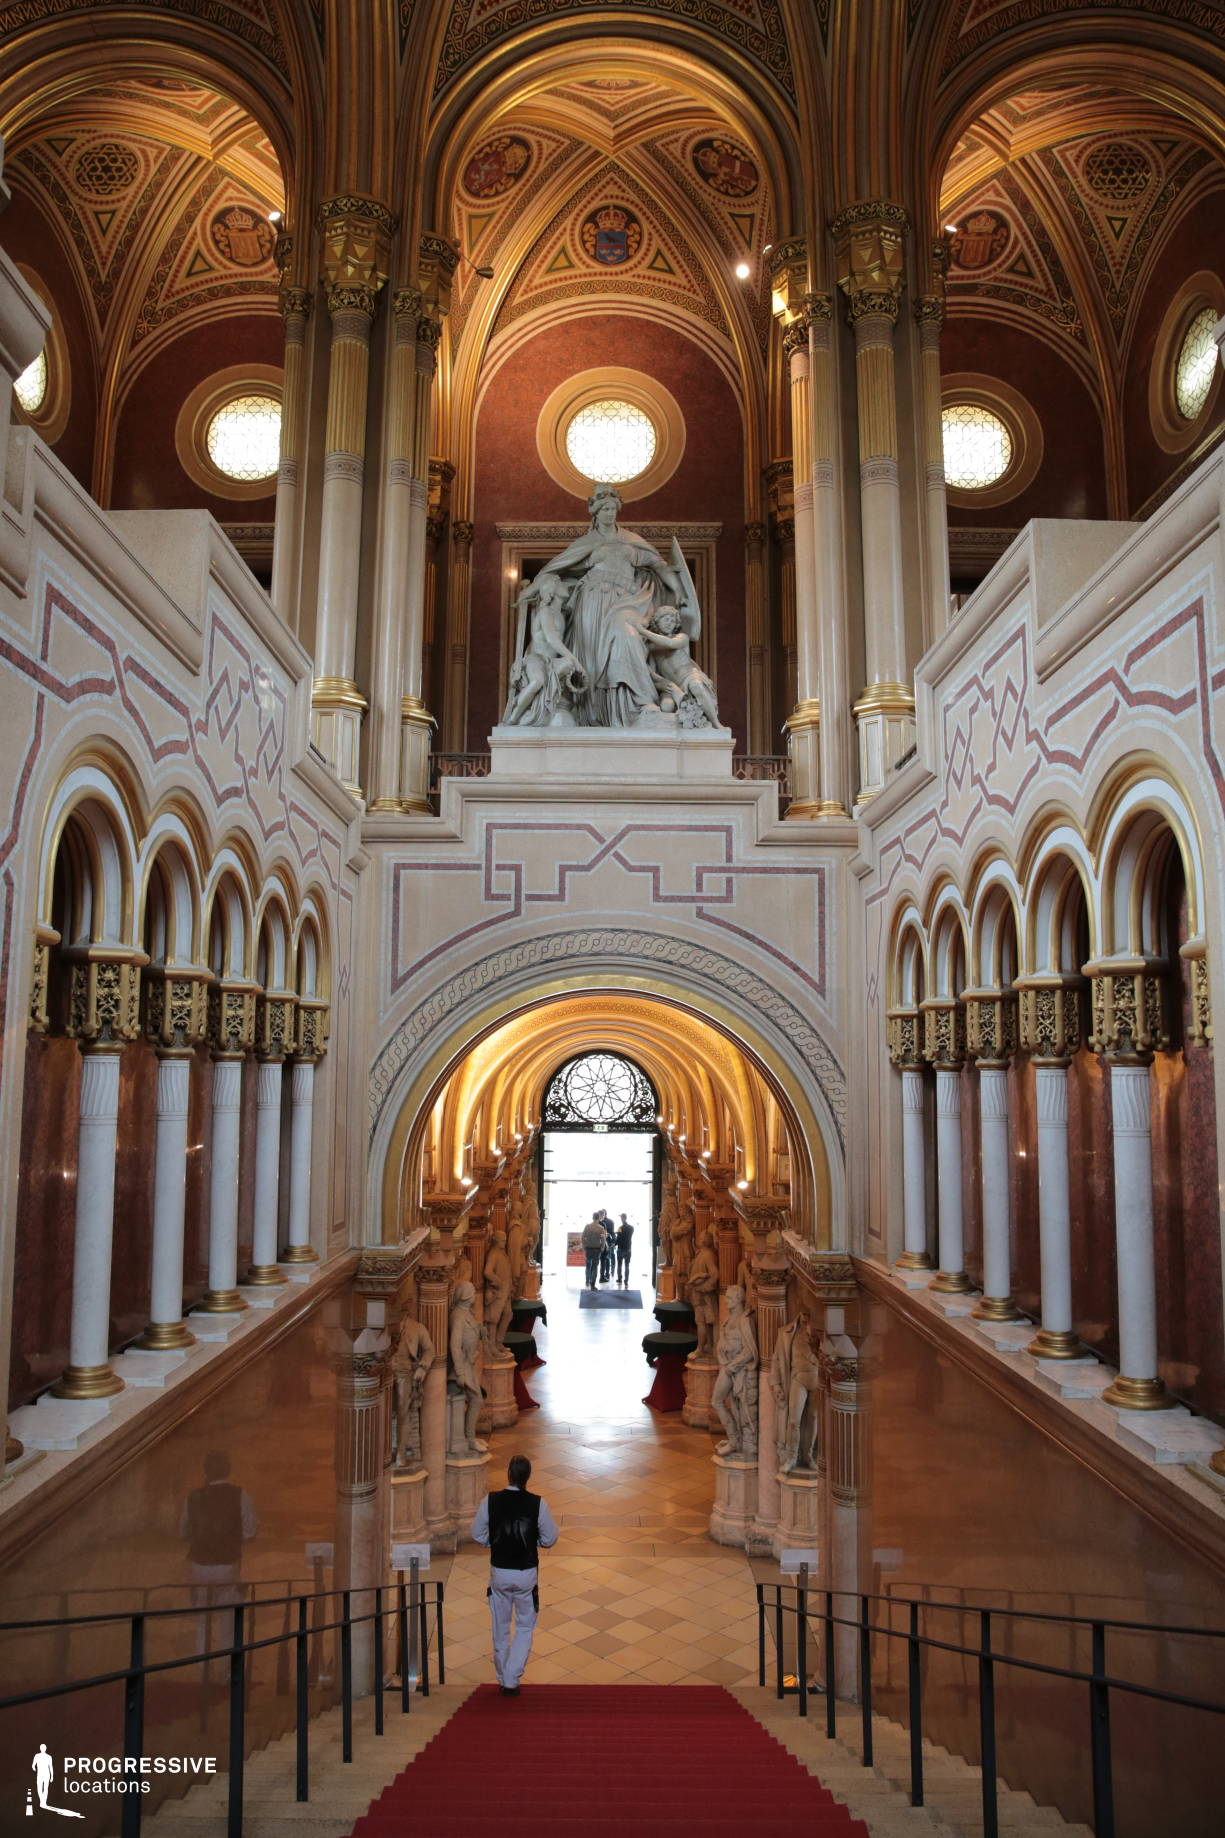 Locations in Austria: Staircase, Military History Museum